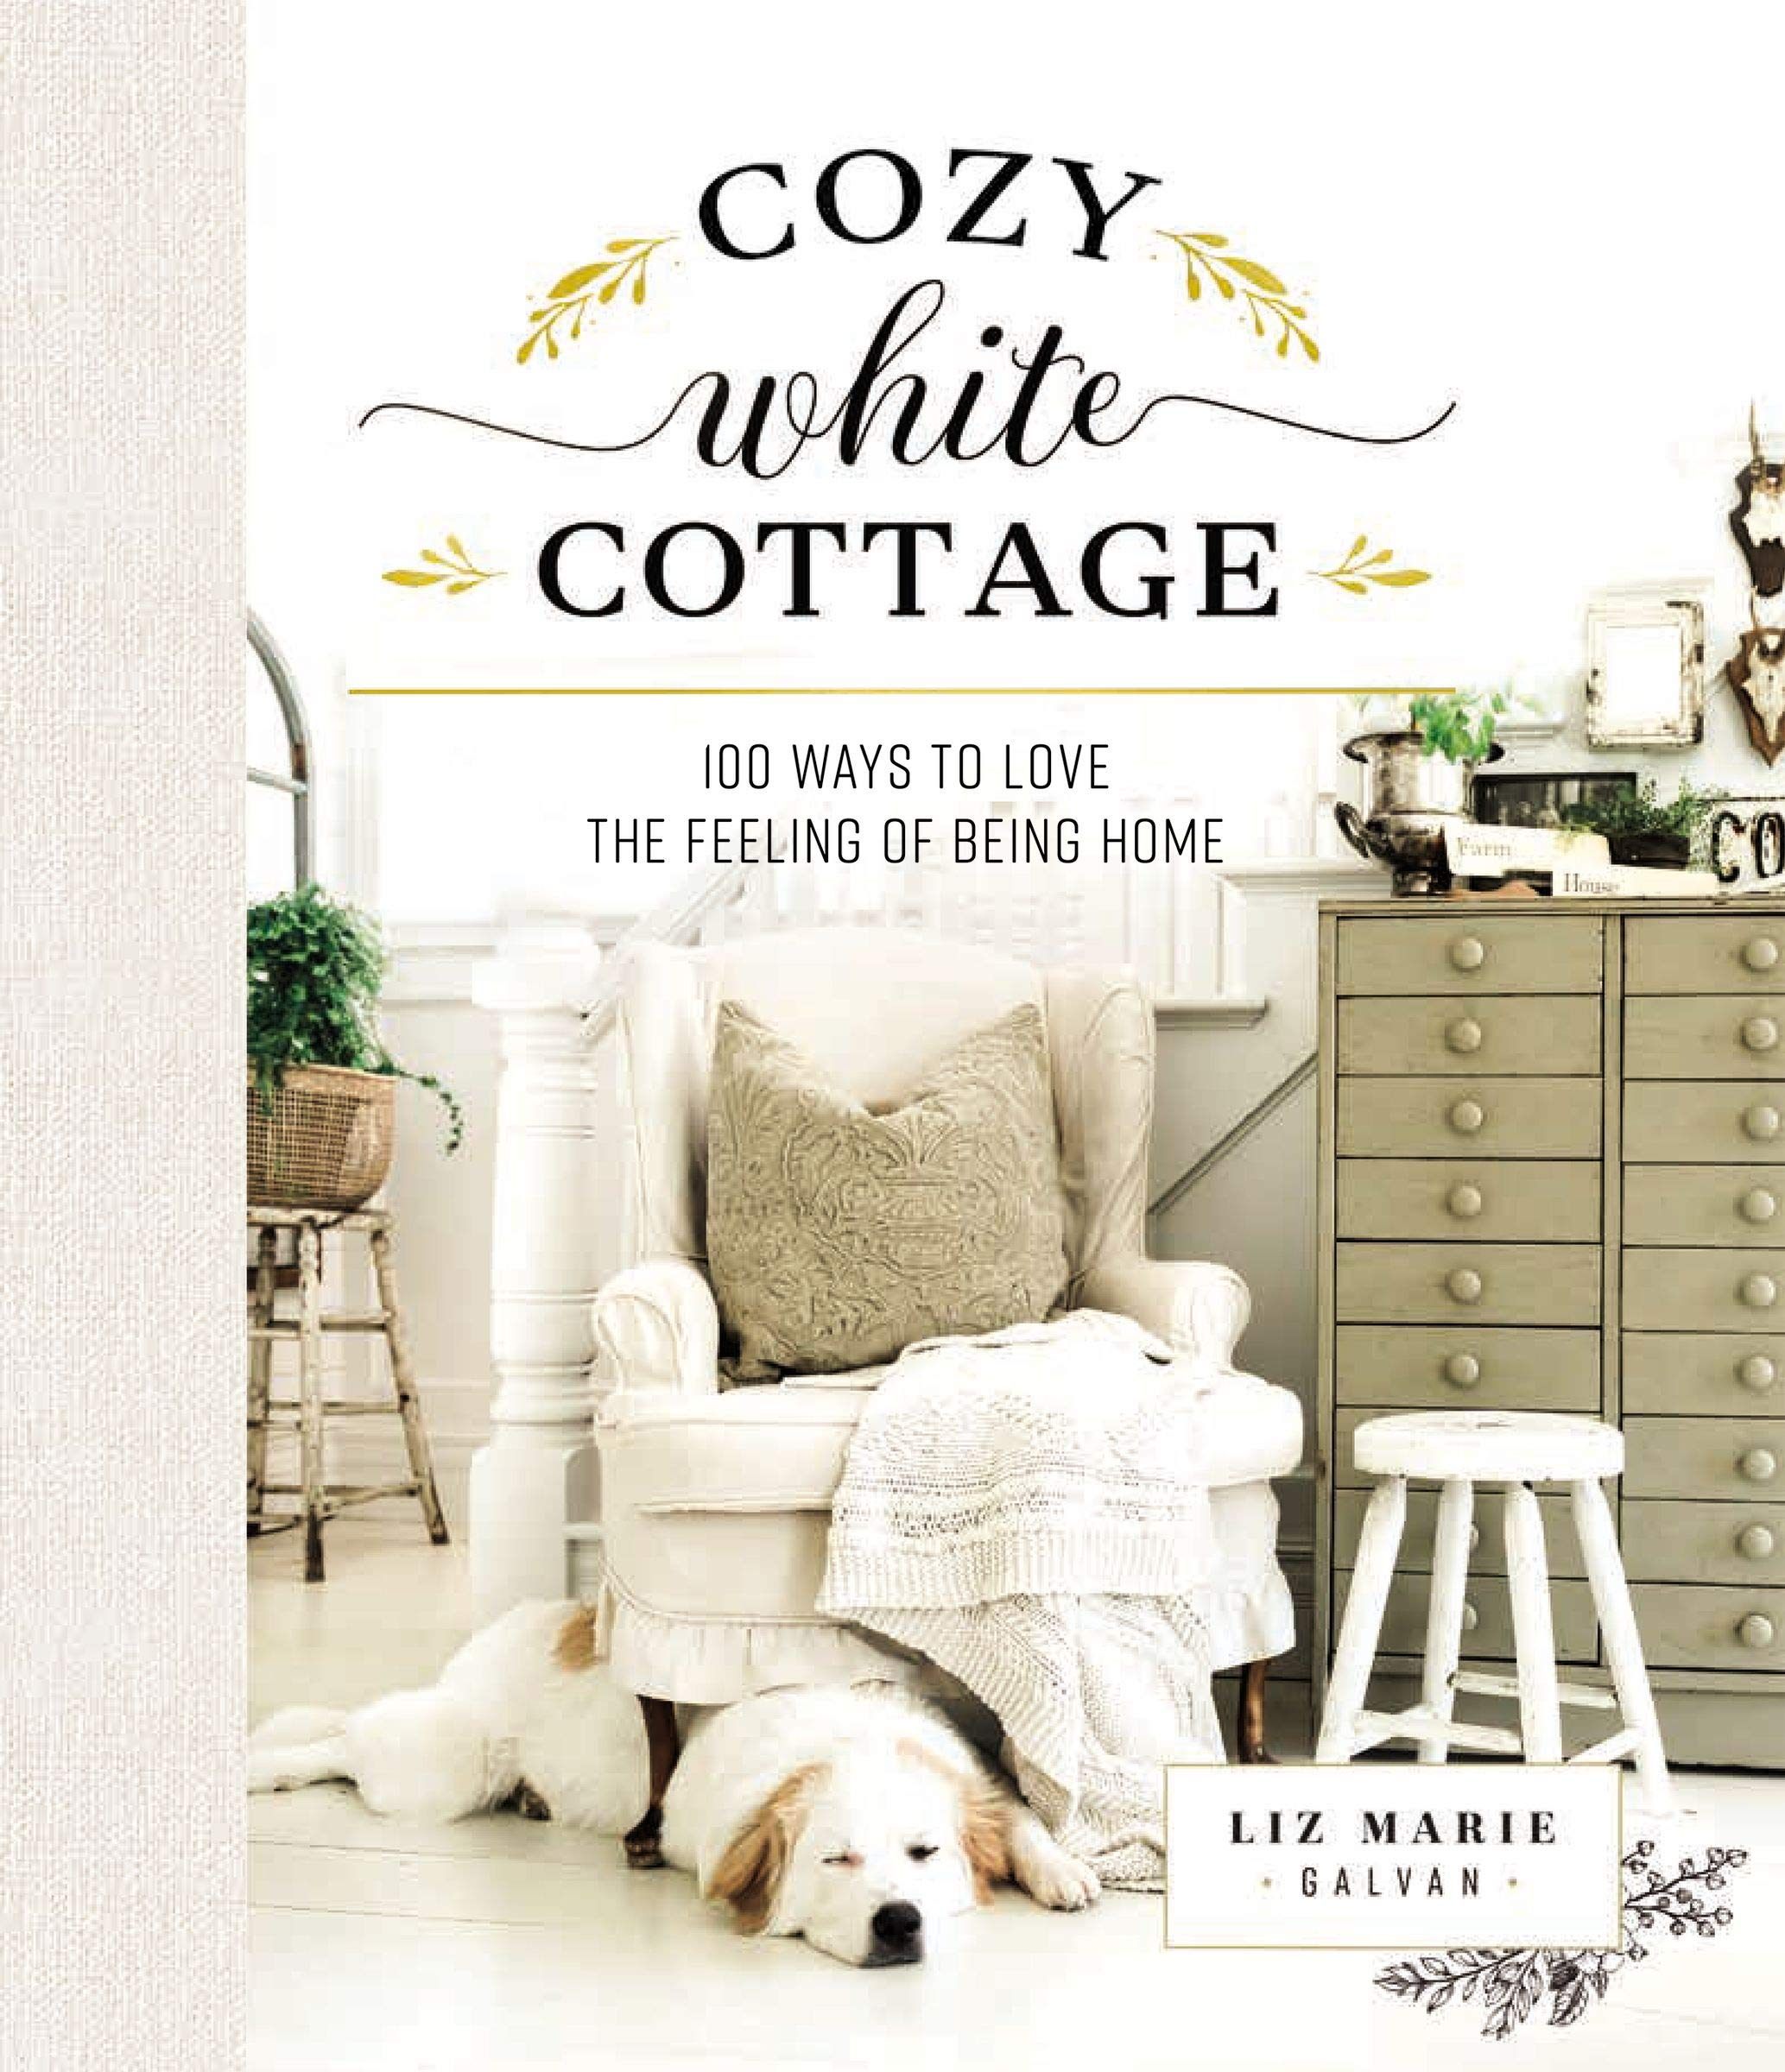 Cozy White Cottage: 100 Ways to Love the Feeling of Being Home: Galvan, Liz  Marie: 9781400315321: Amazon.com: Books